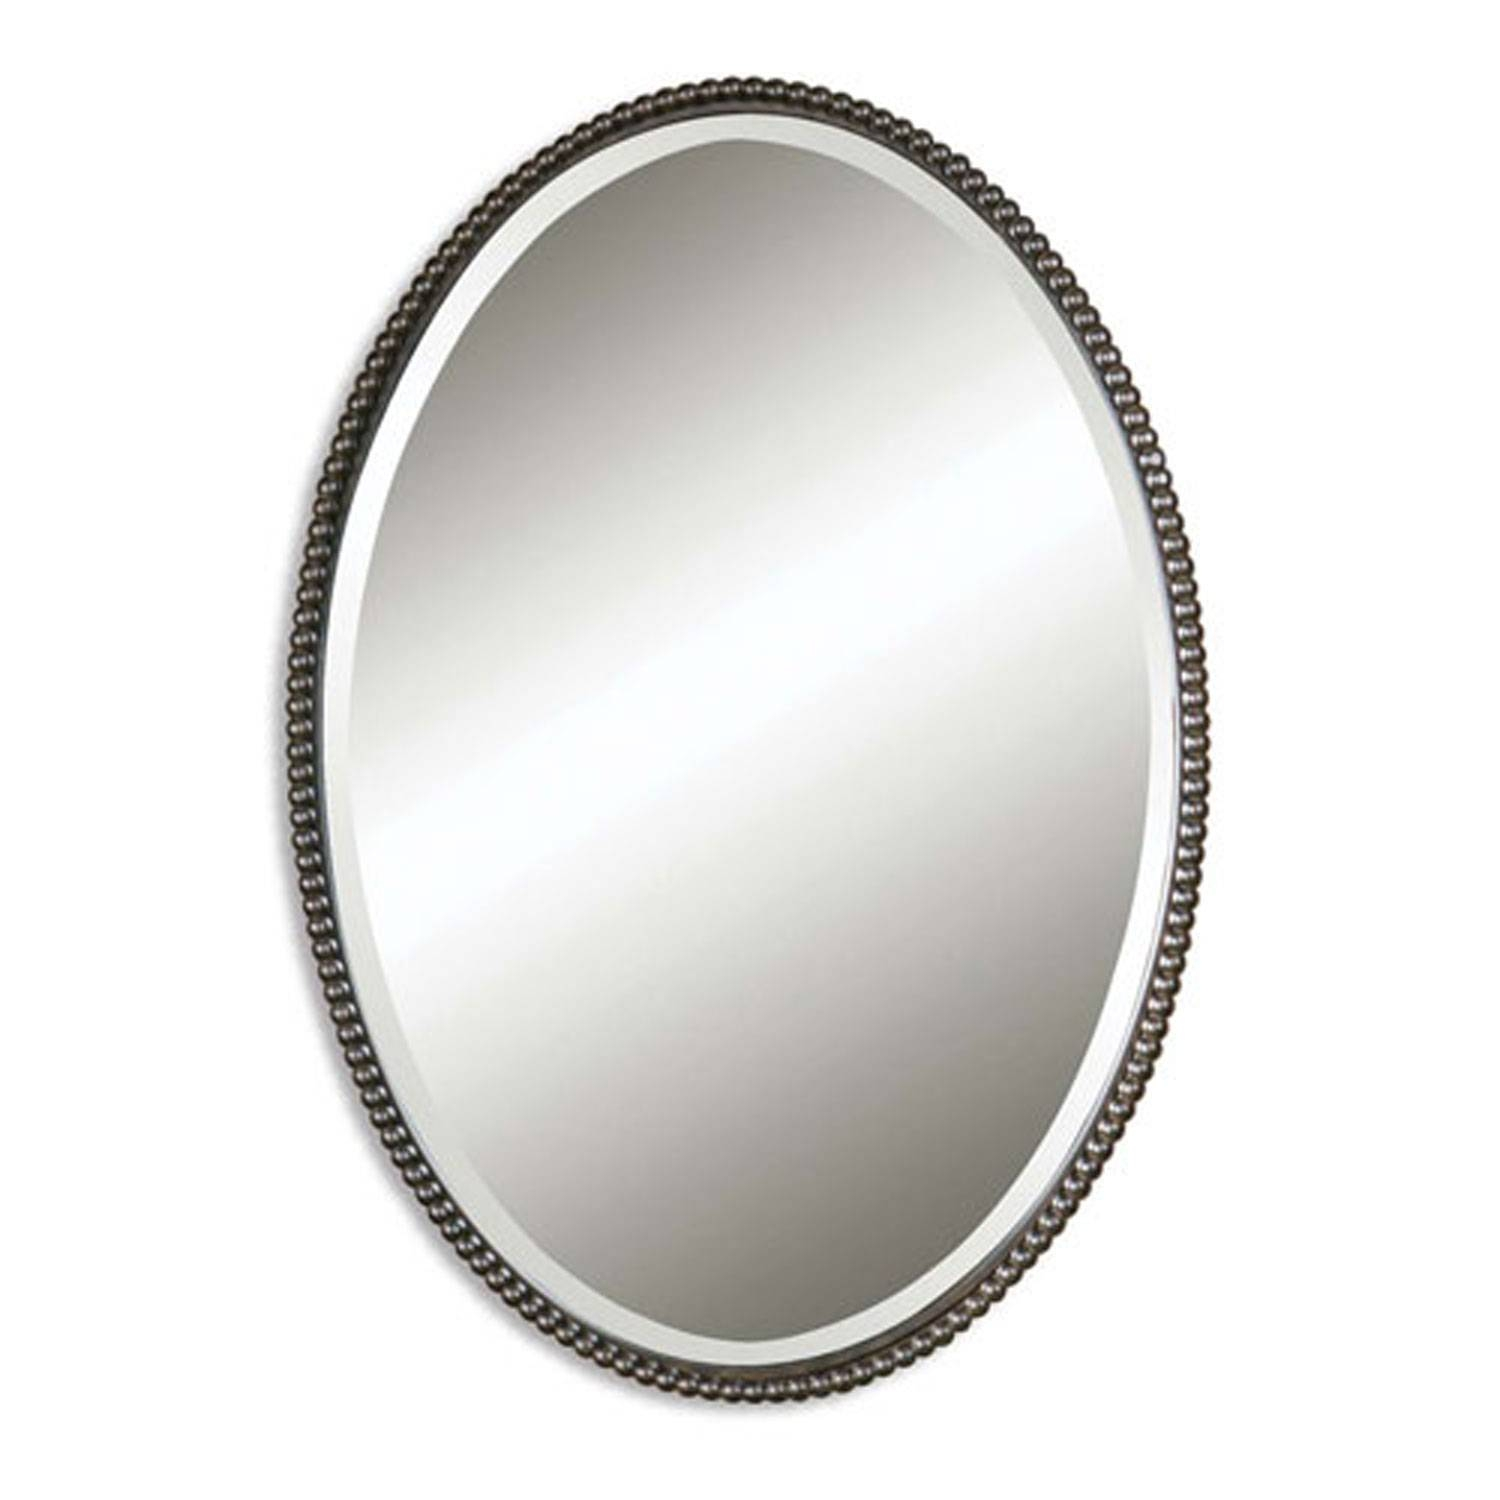 Sherise Oval Mirror Uttermost Wall Mirror Mirrors Home Decor Throughout Silver Oval Wall Mirrors (View 19 of 25)